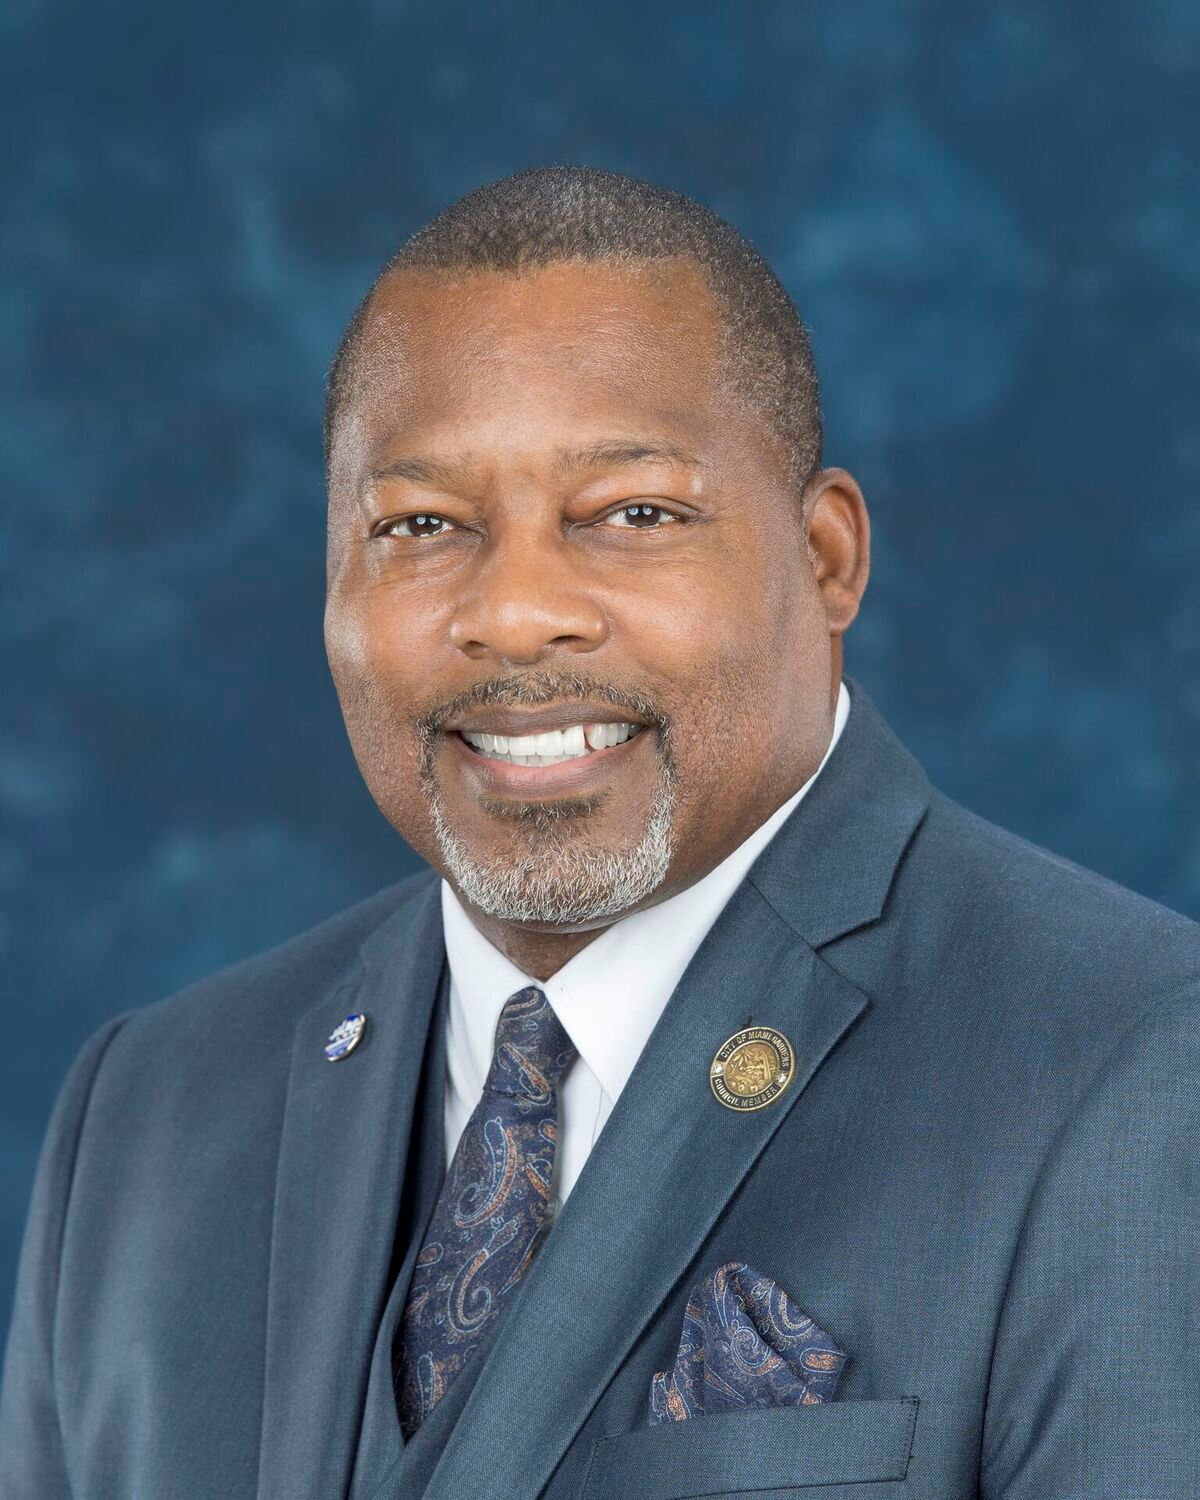 Councilman Rodney Harris